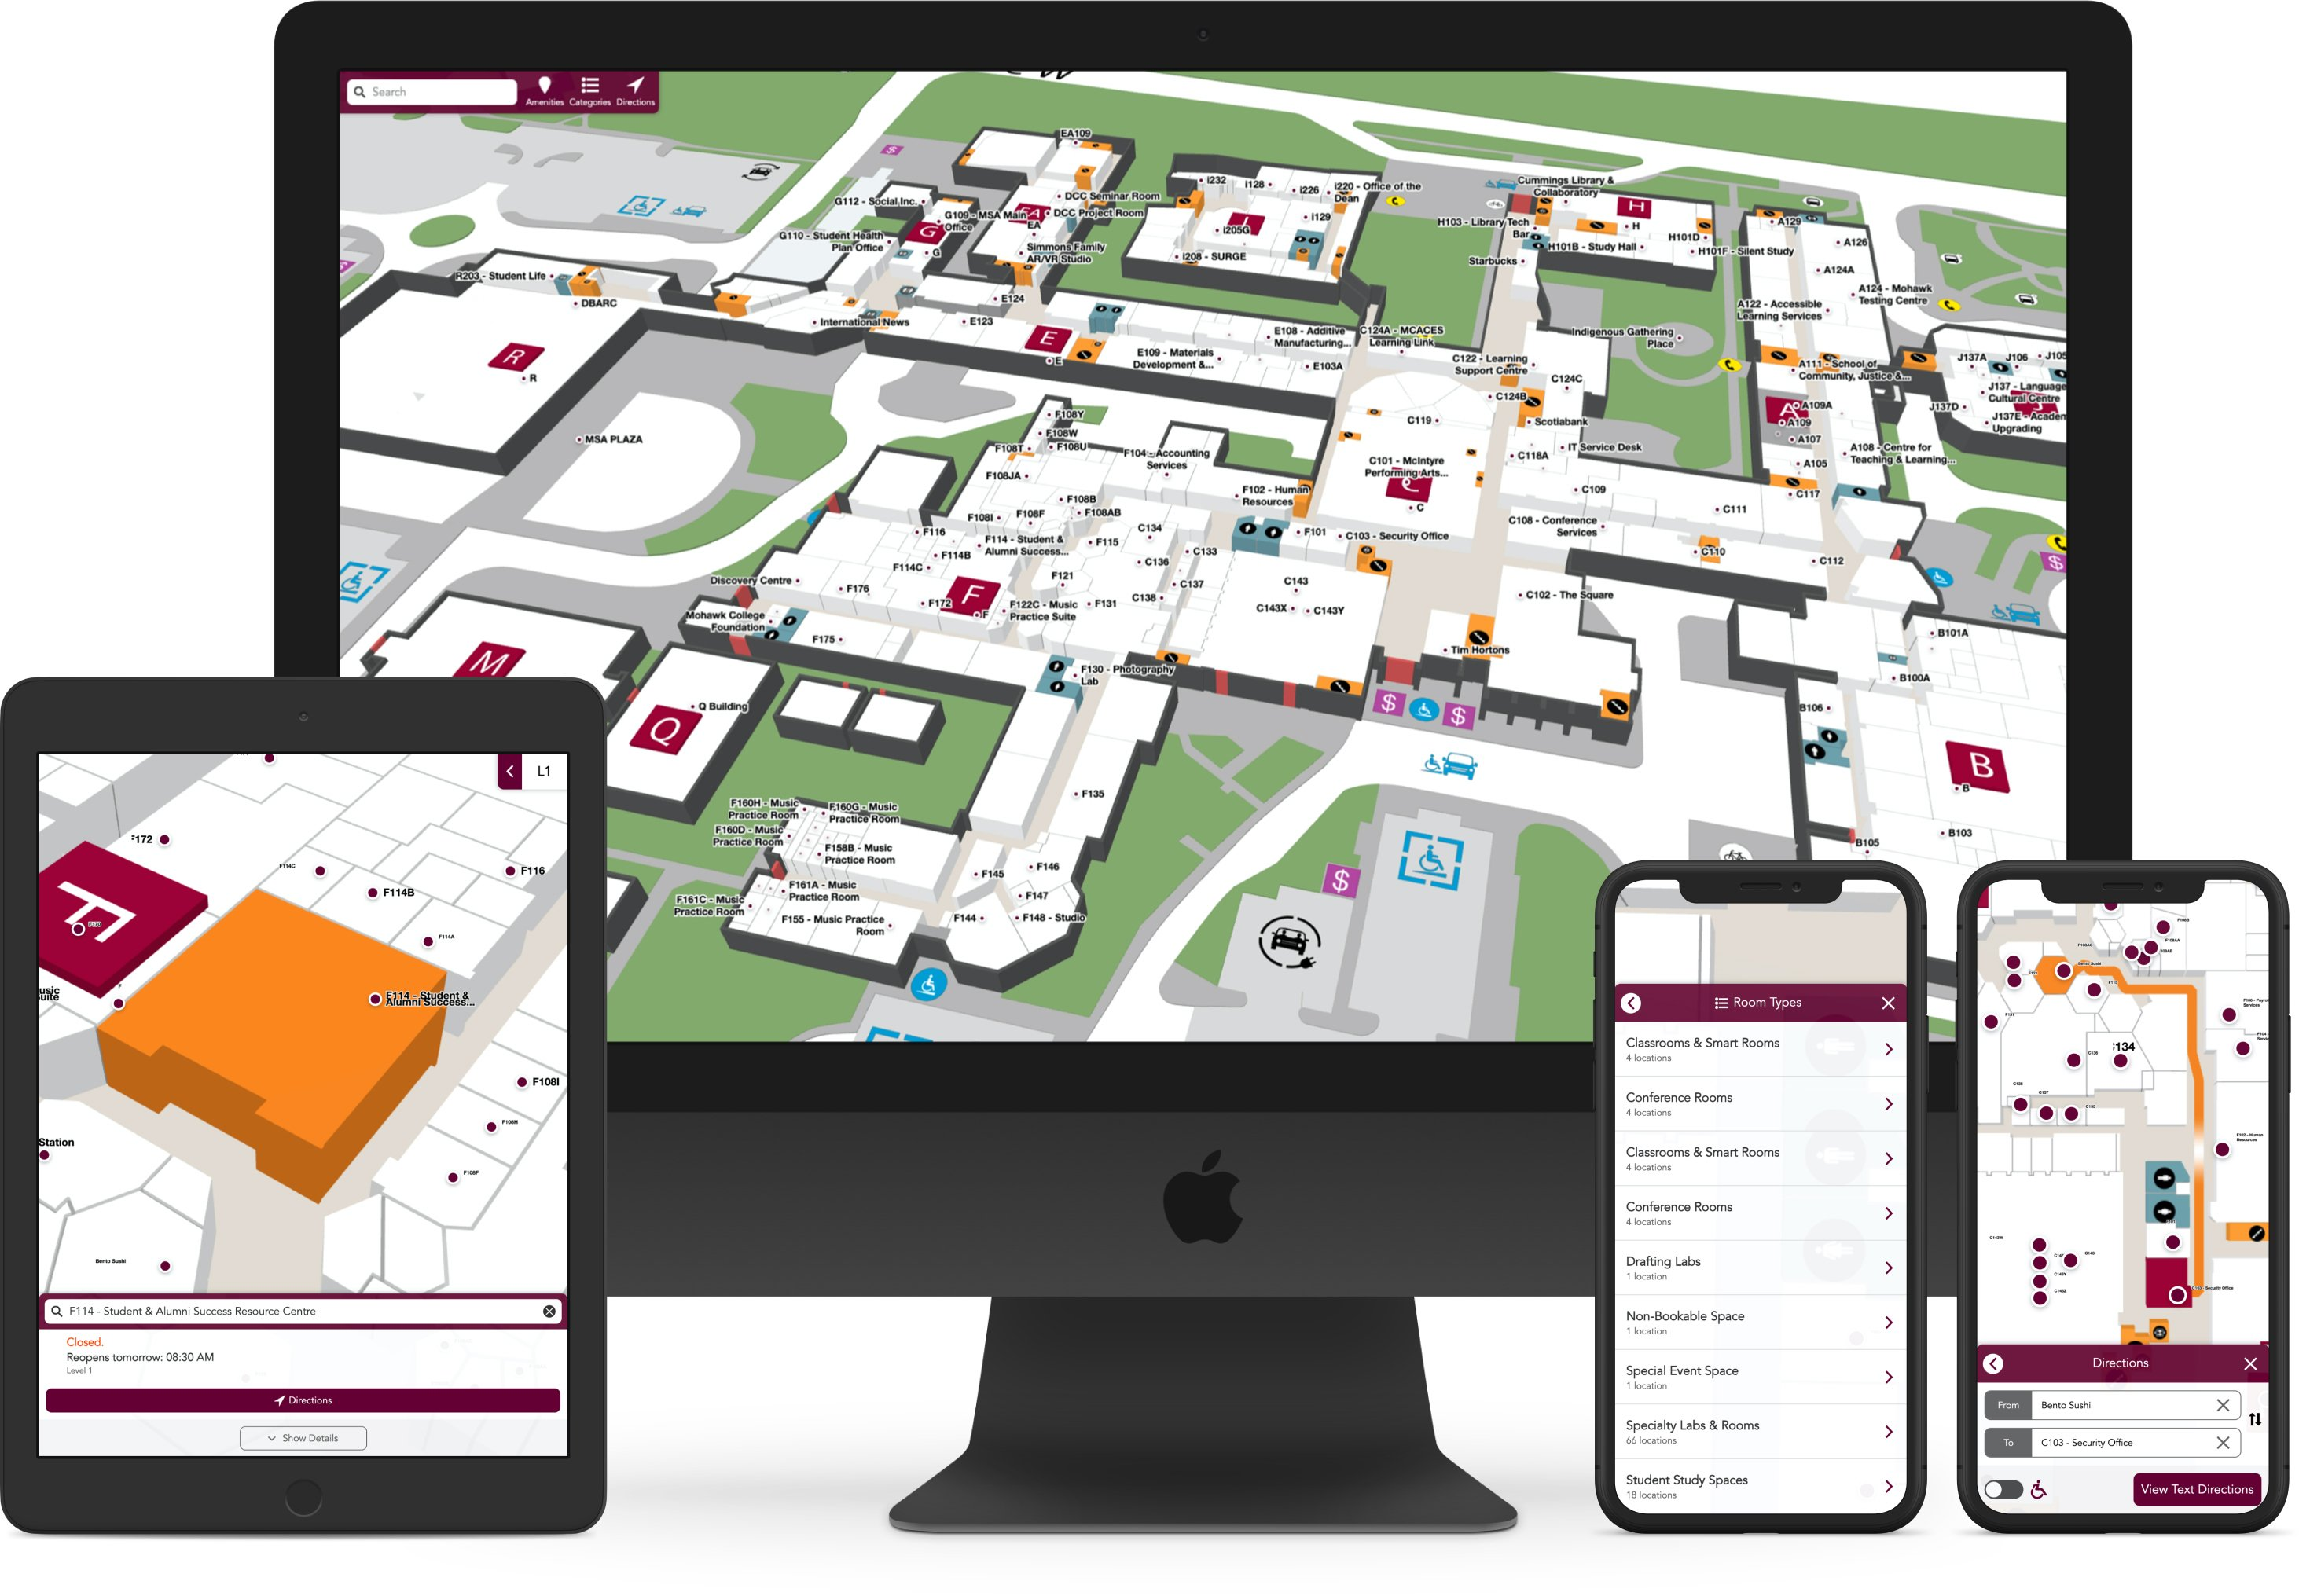 Mohawk College map across devices